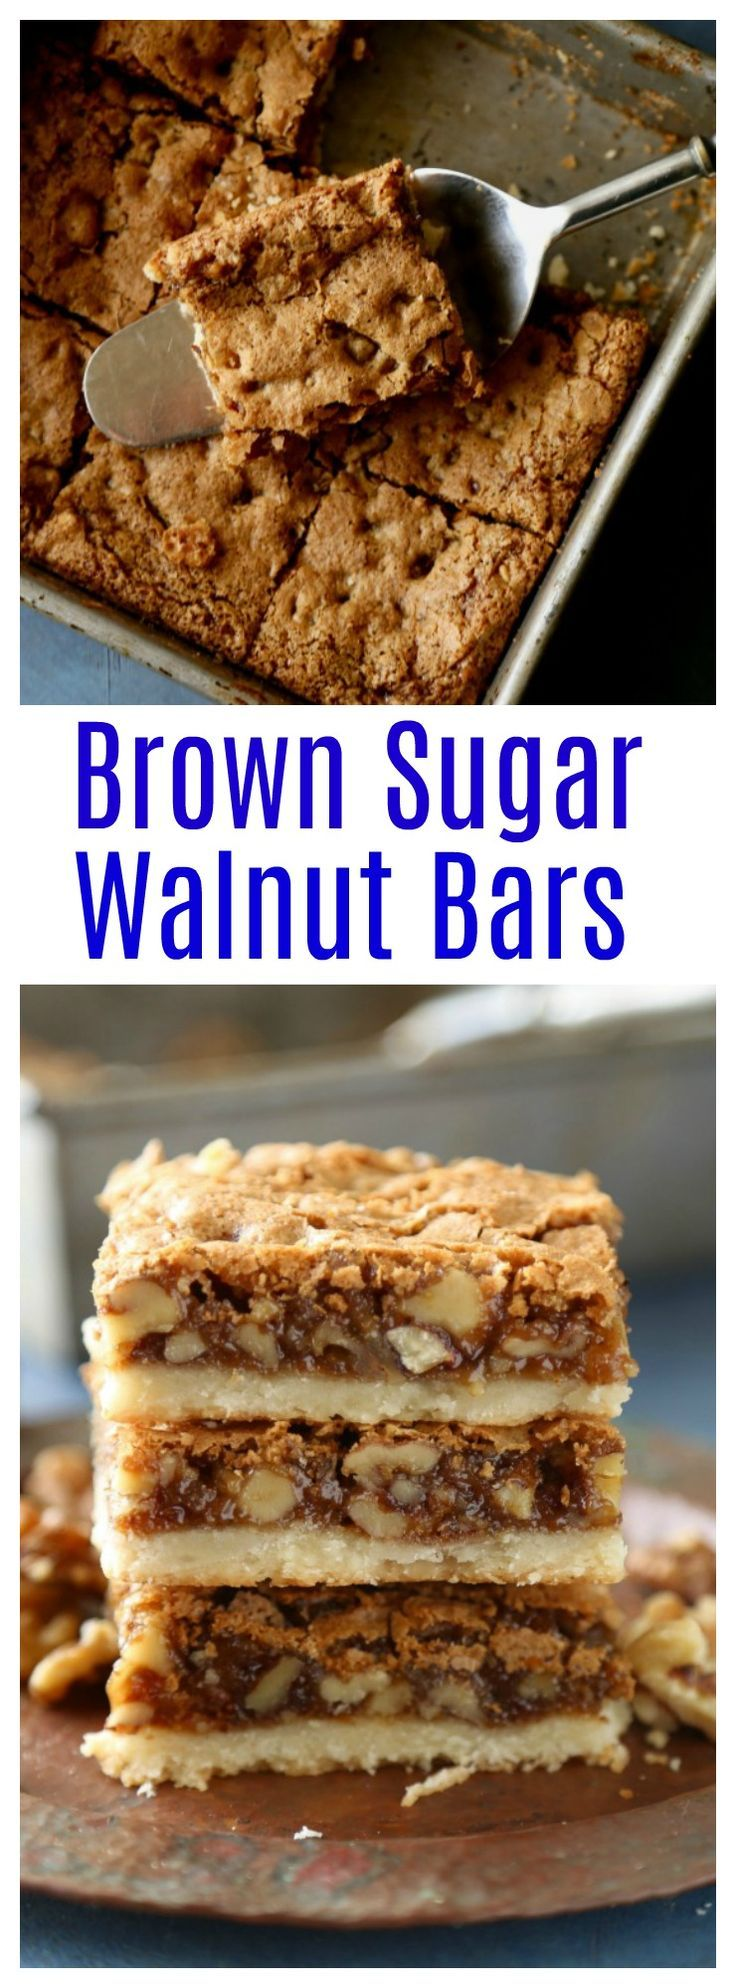 Brown sugar walnut bars have a buttery shortbread base and a sweet brown sugar walnut topping. #holidaybaking #fallrecipes #easy #dessertbars